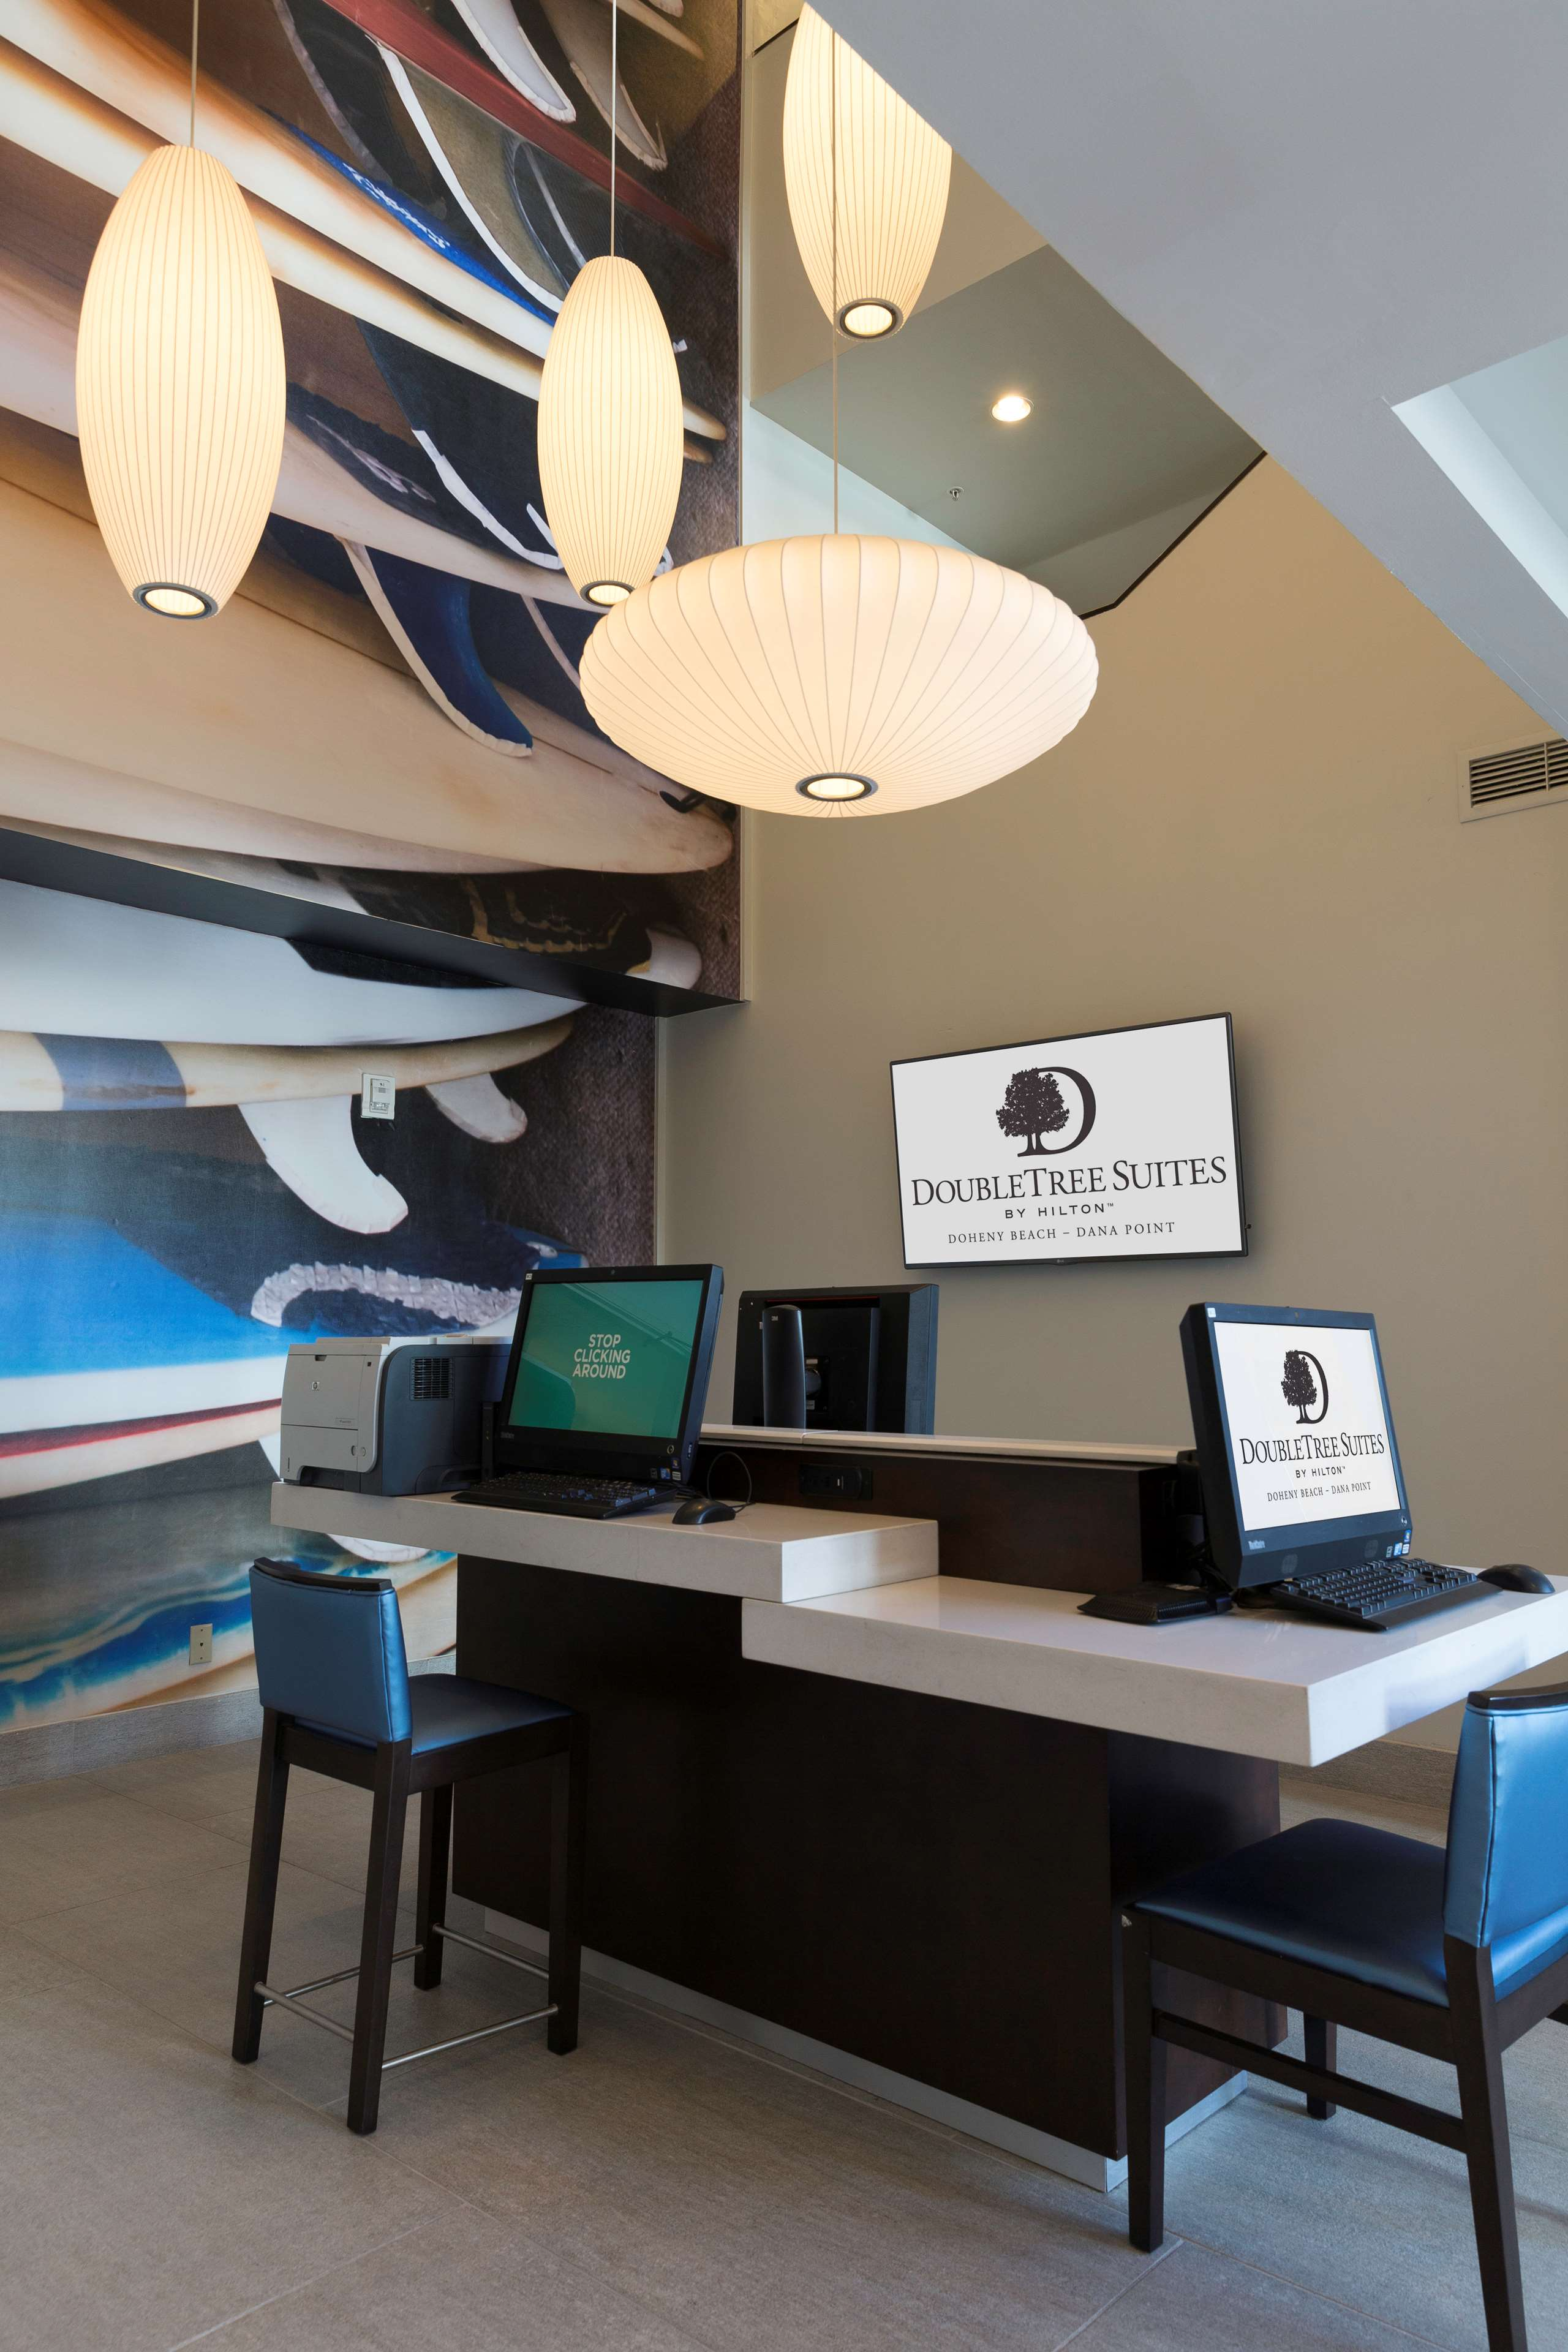 DoubleTree Suites by Hilton Hotel Doheny Beach - Dana Point image 32